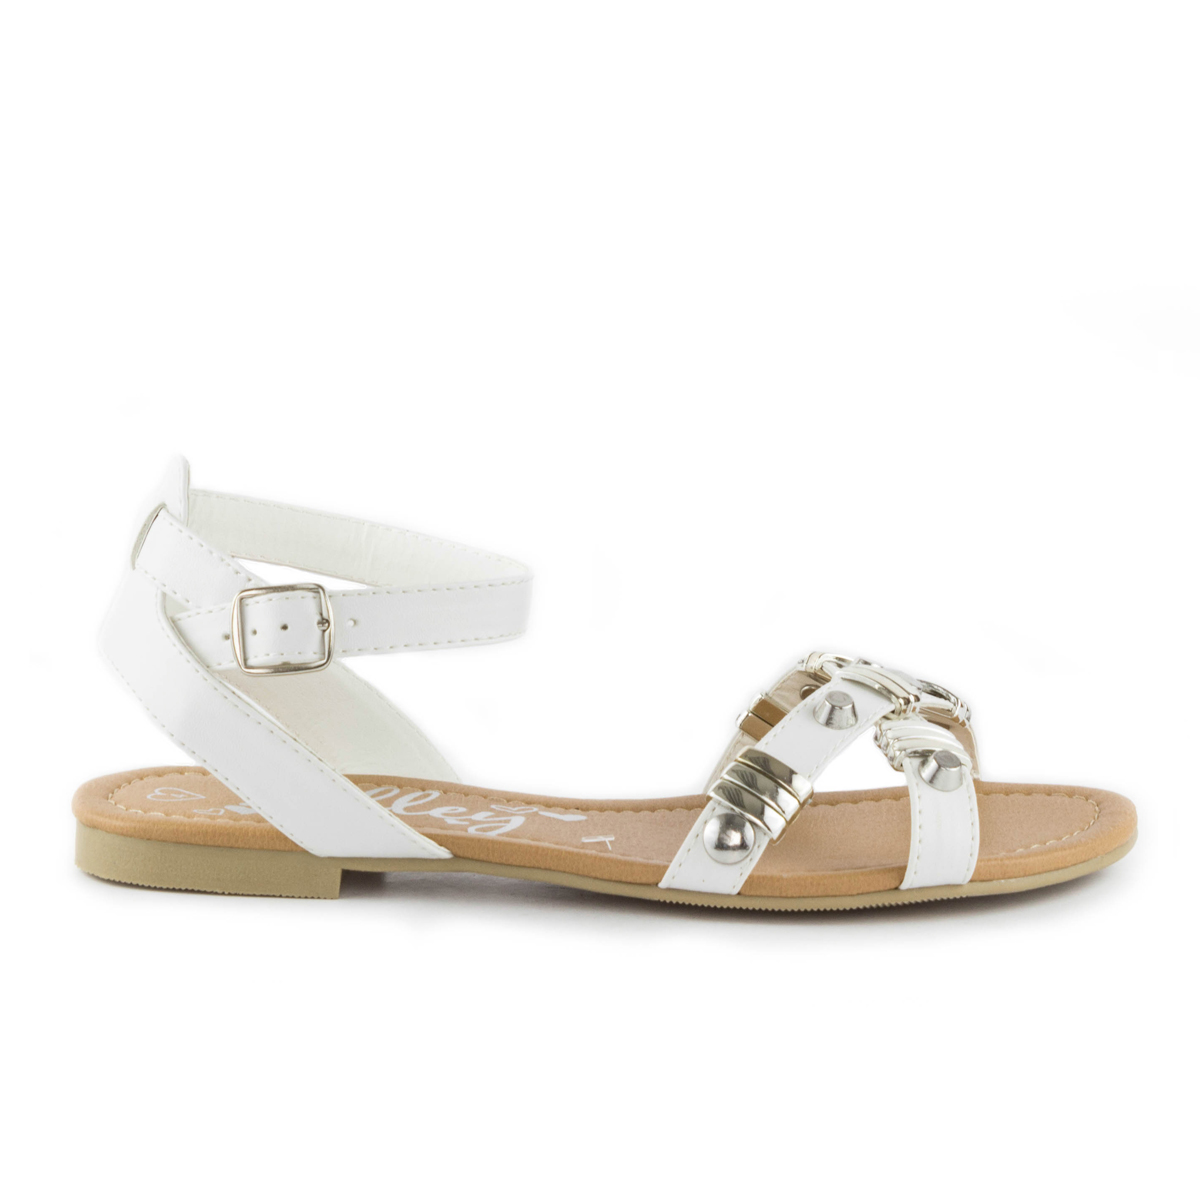 Shoes zone sandals -  Shoe Zone Lilley Womens White Strappy Sandal With Metal Trim 12 99 Now 9 99